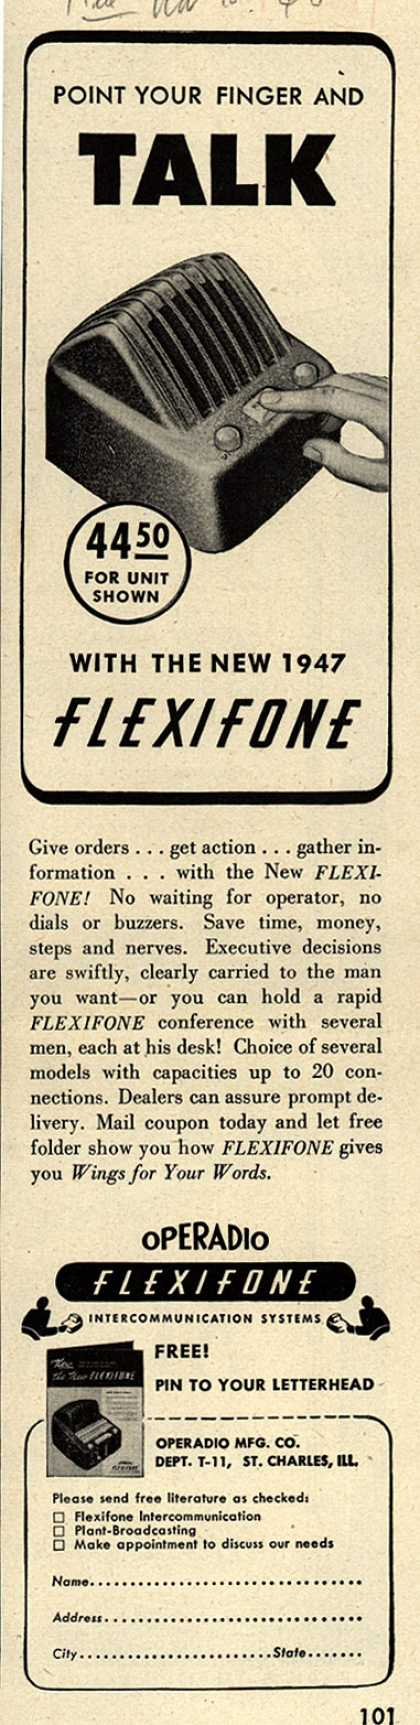 Operadio Manufacturing Company's Intercoms – Point Your Finger and Talk With the New 1947 Flexifone (1946)